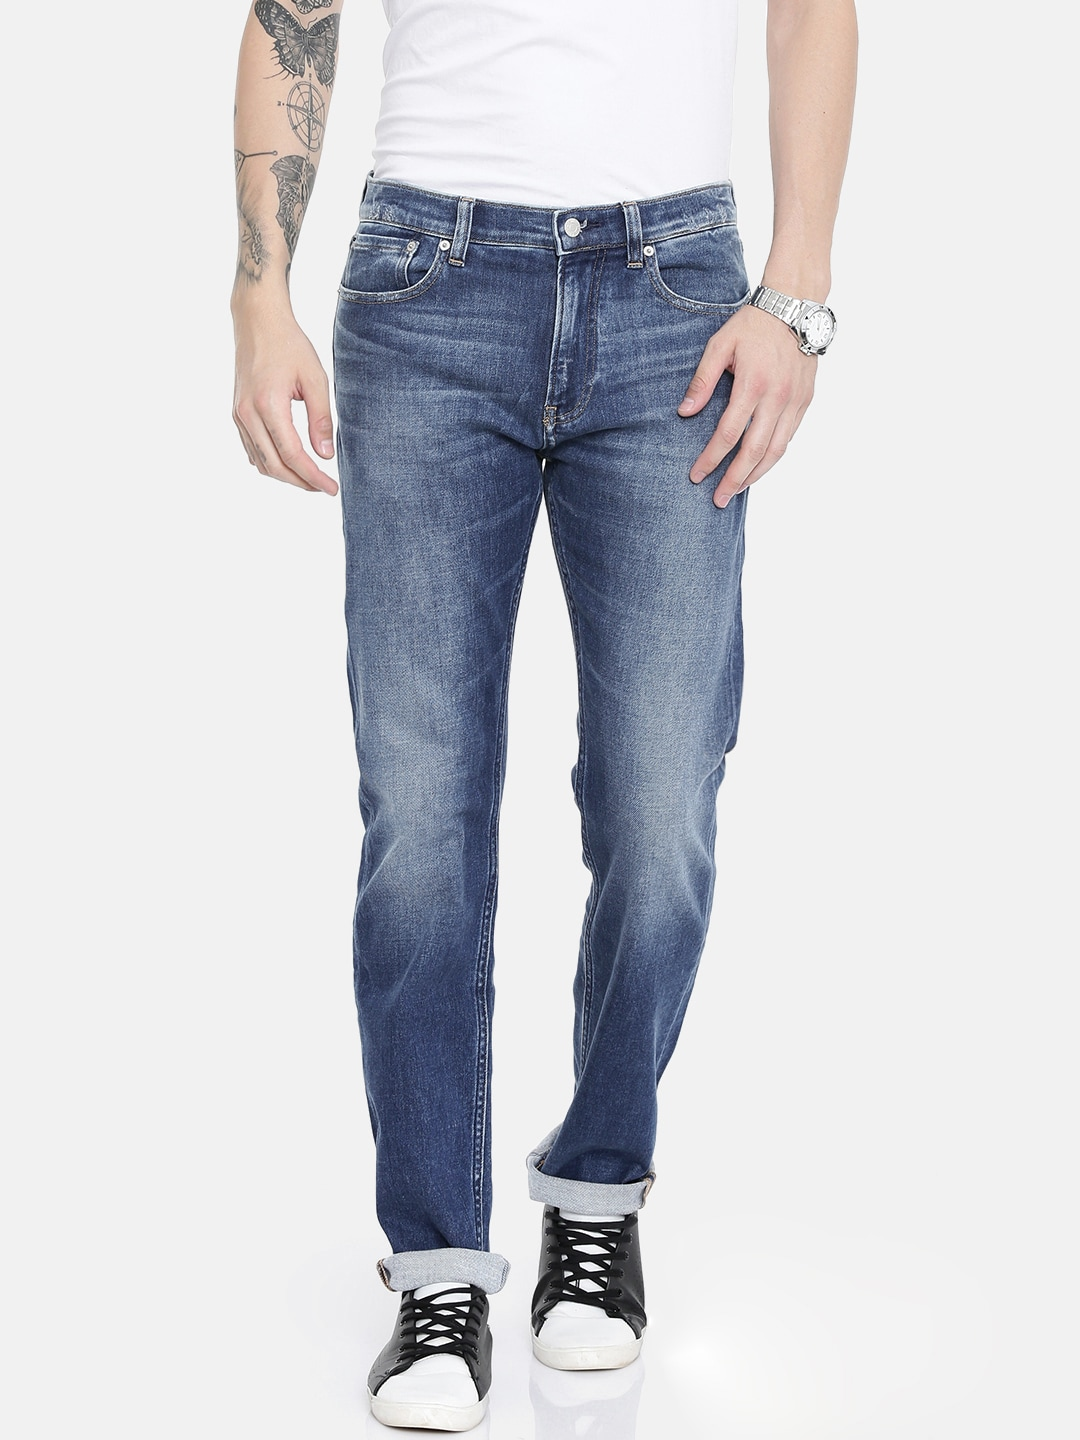 Calvin Klein Mens Jeans 32/32 Fashionable In Style;